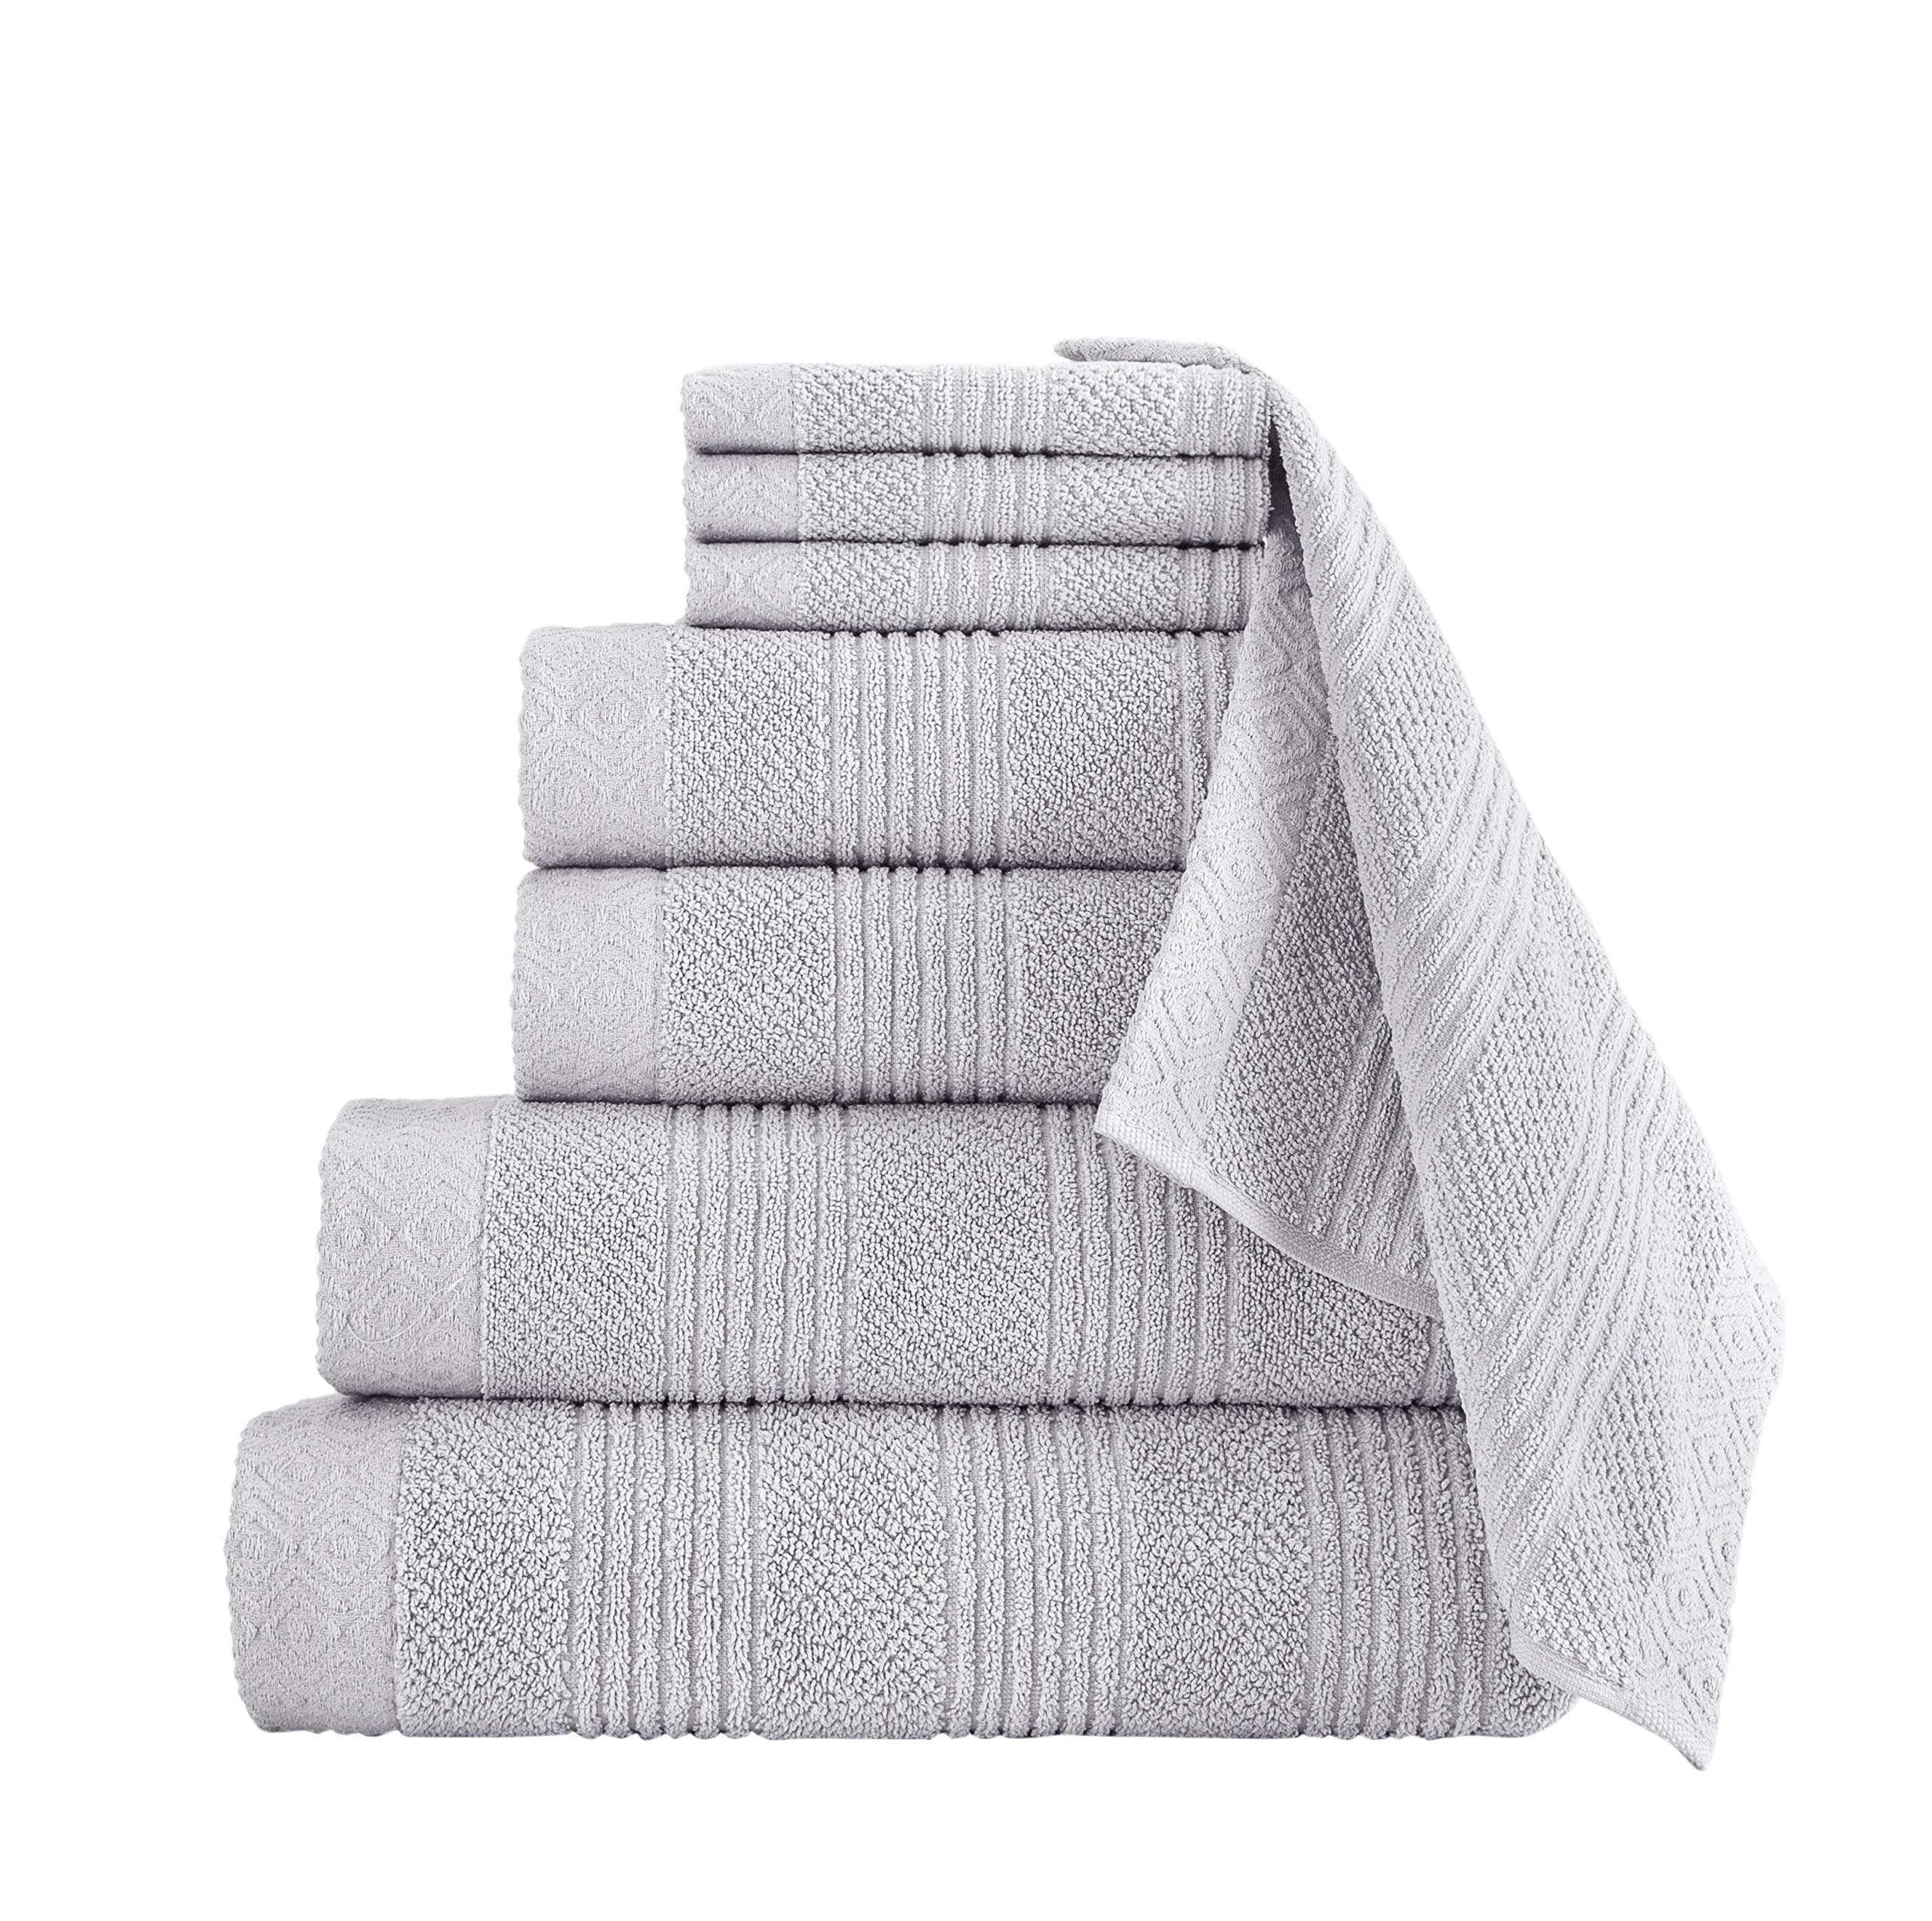 Classic Turkish Towels Luxury Bath Towel Set - Complete Bathroom Set with Large Bath Sheet Included - Made with 100% Turkish Cotton (Platinum, 8 Piece Set)